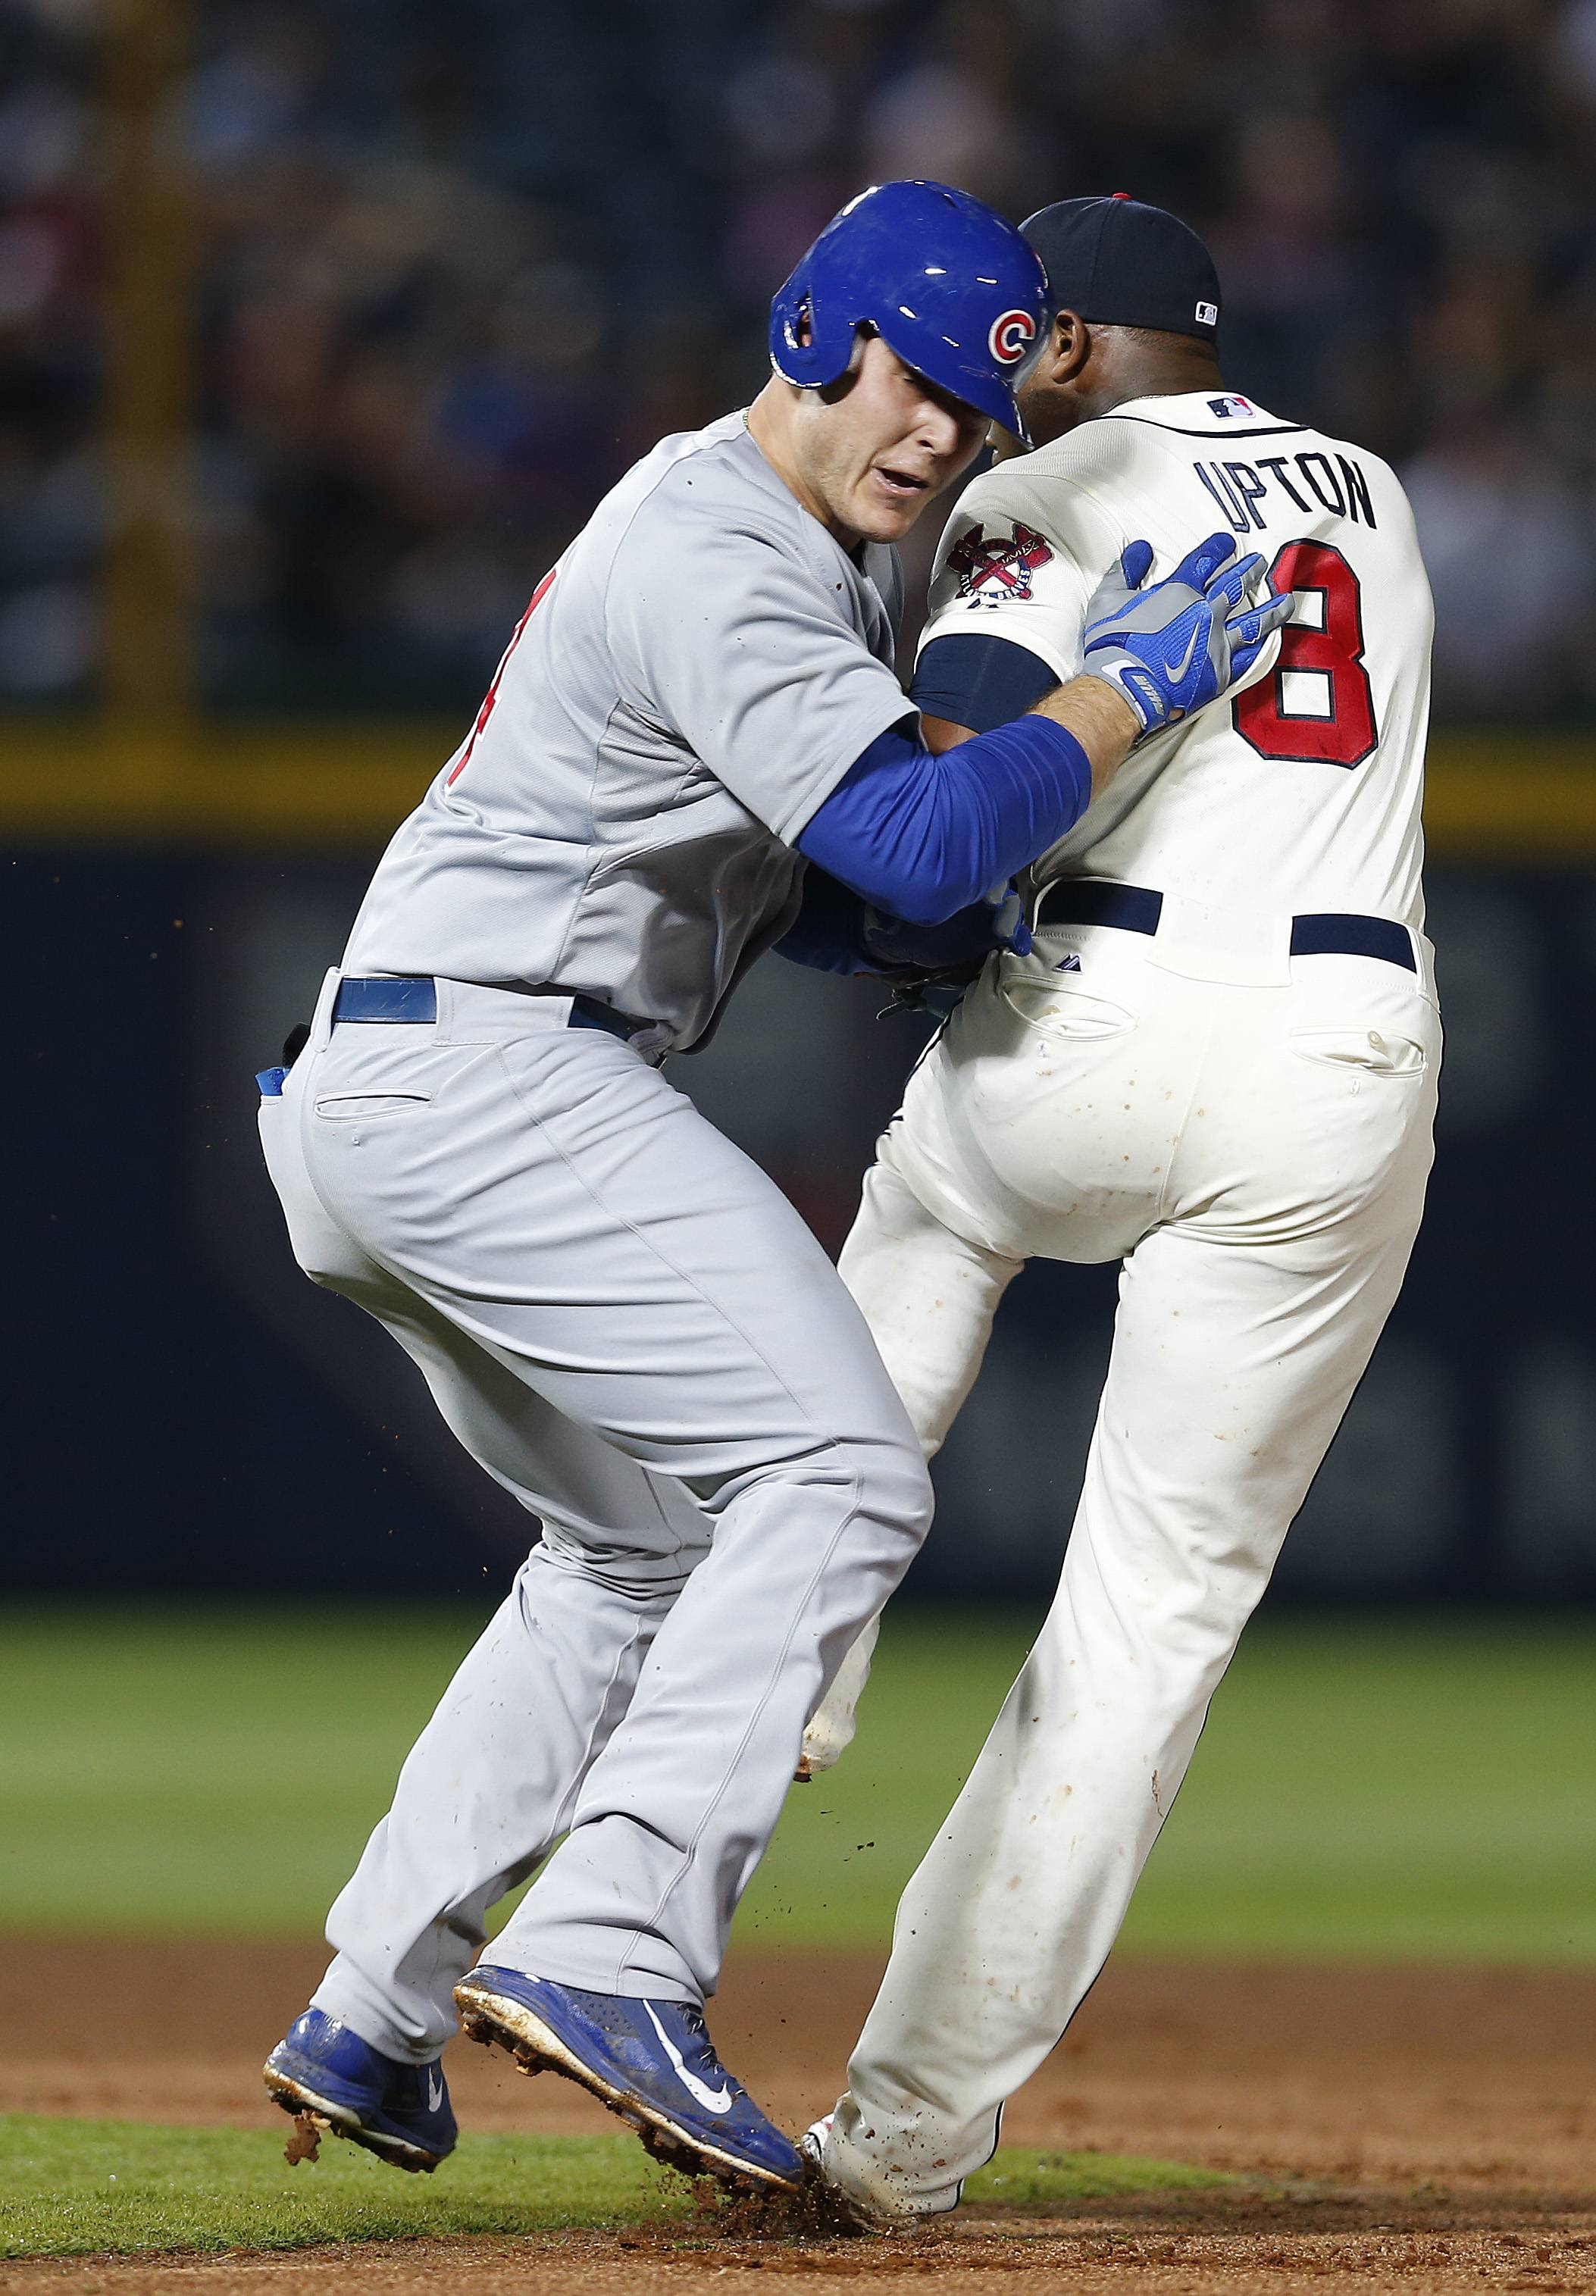 Braves left fielder Justin Upton tags out the Cubs' Anthony Rizzo after a rundown between first and second base in the fourth inning Saturday in Atlanta.